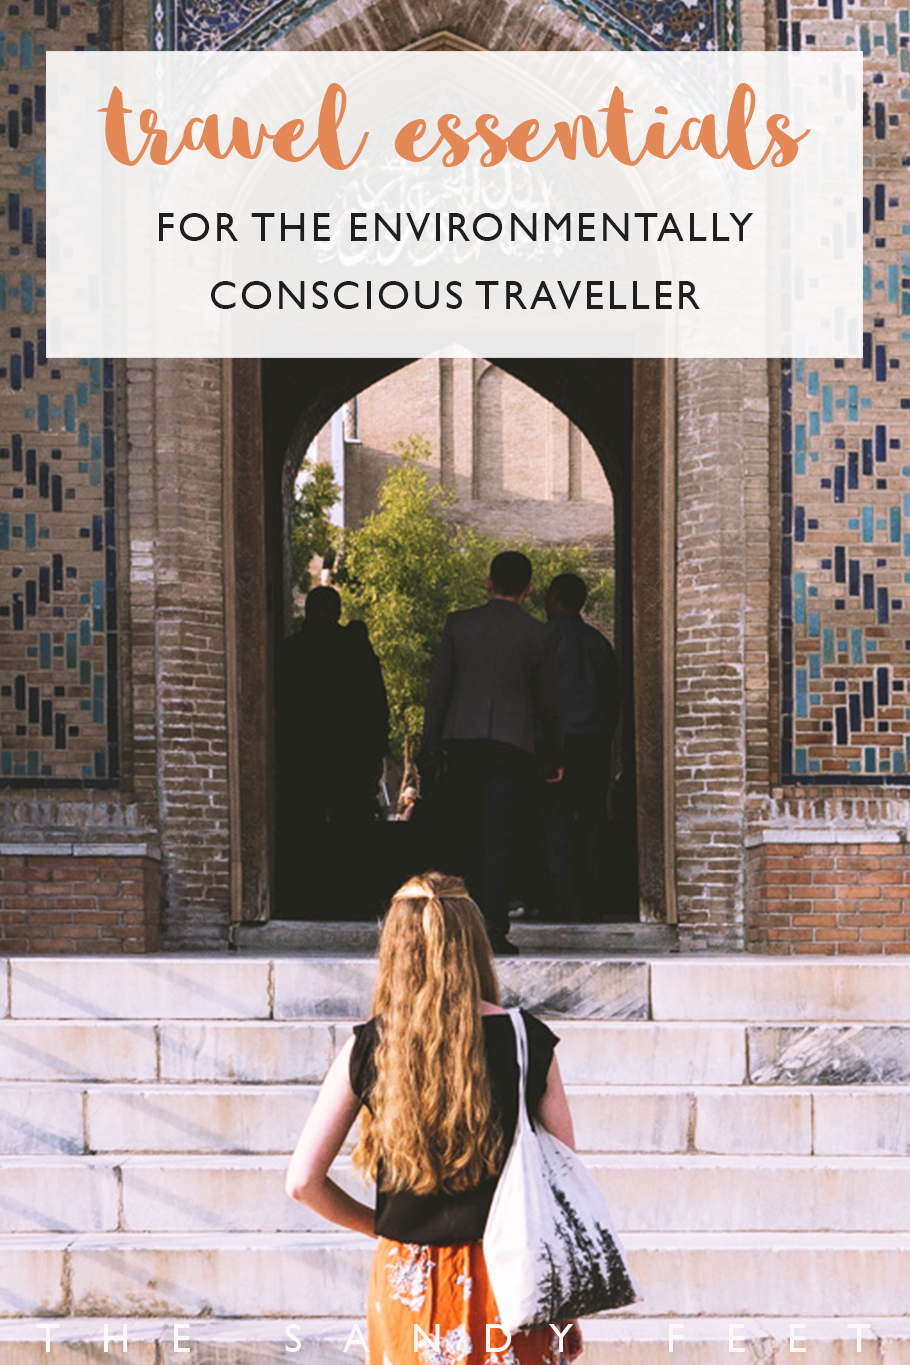 Travel Essentials For The Environmentally Conscious Traveller: Our Favorite Eco-Friendly Travel Products To Help Reduce Your Waste On The Road